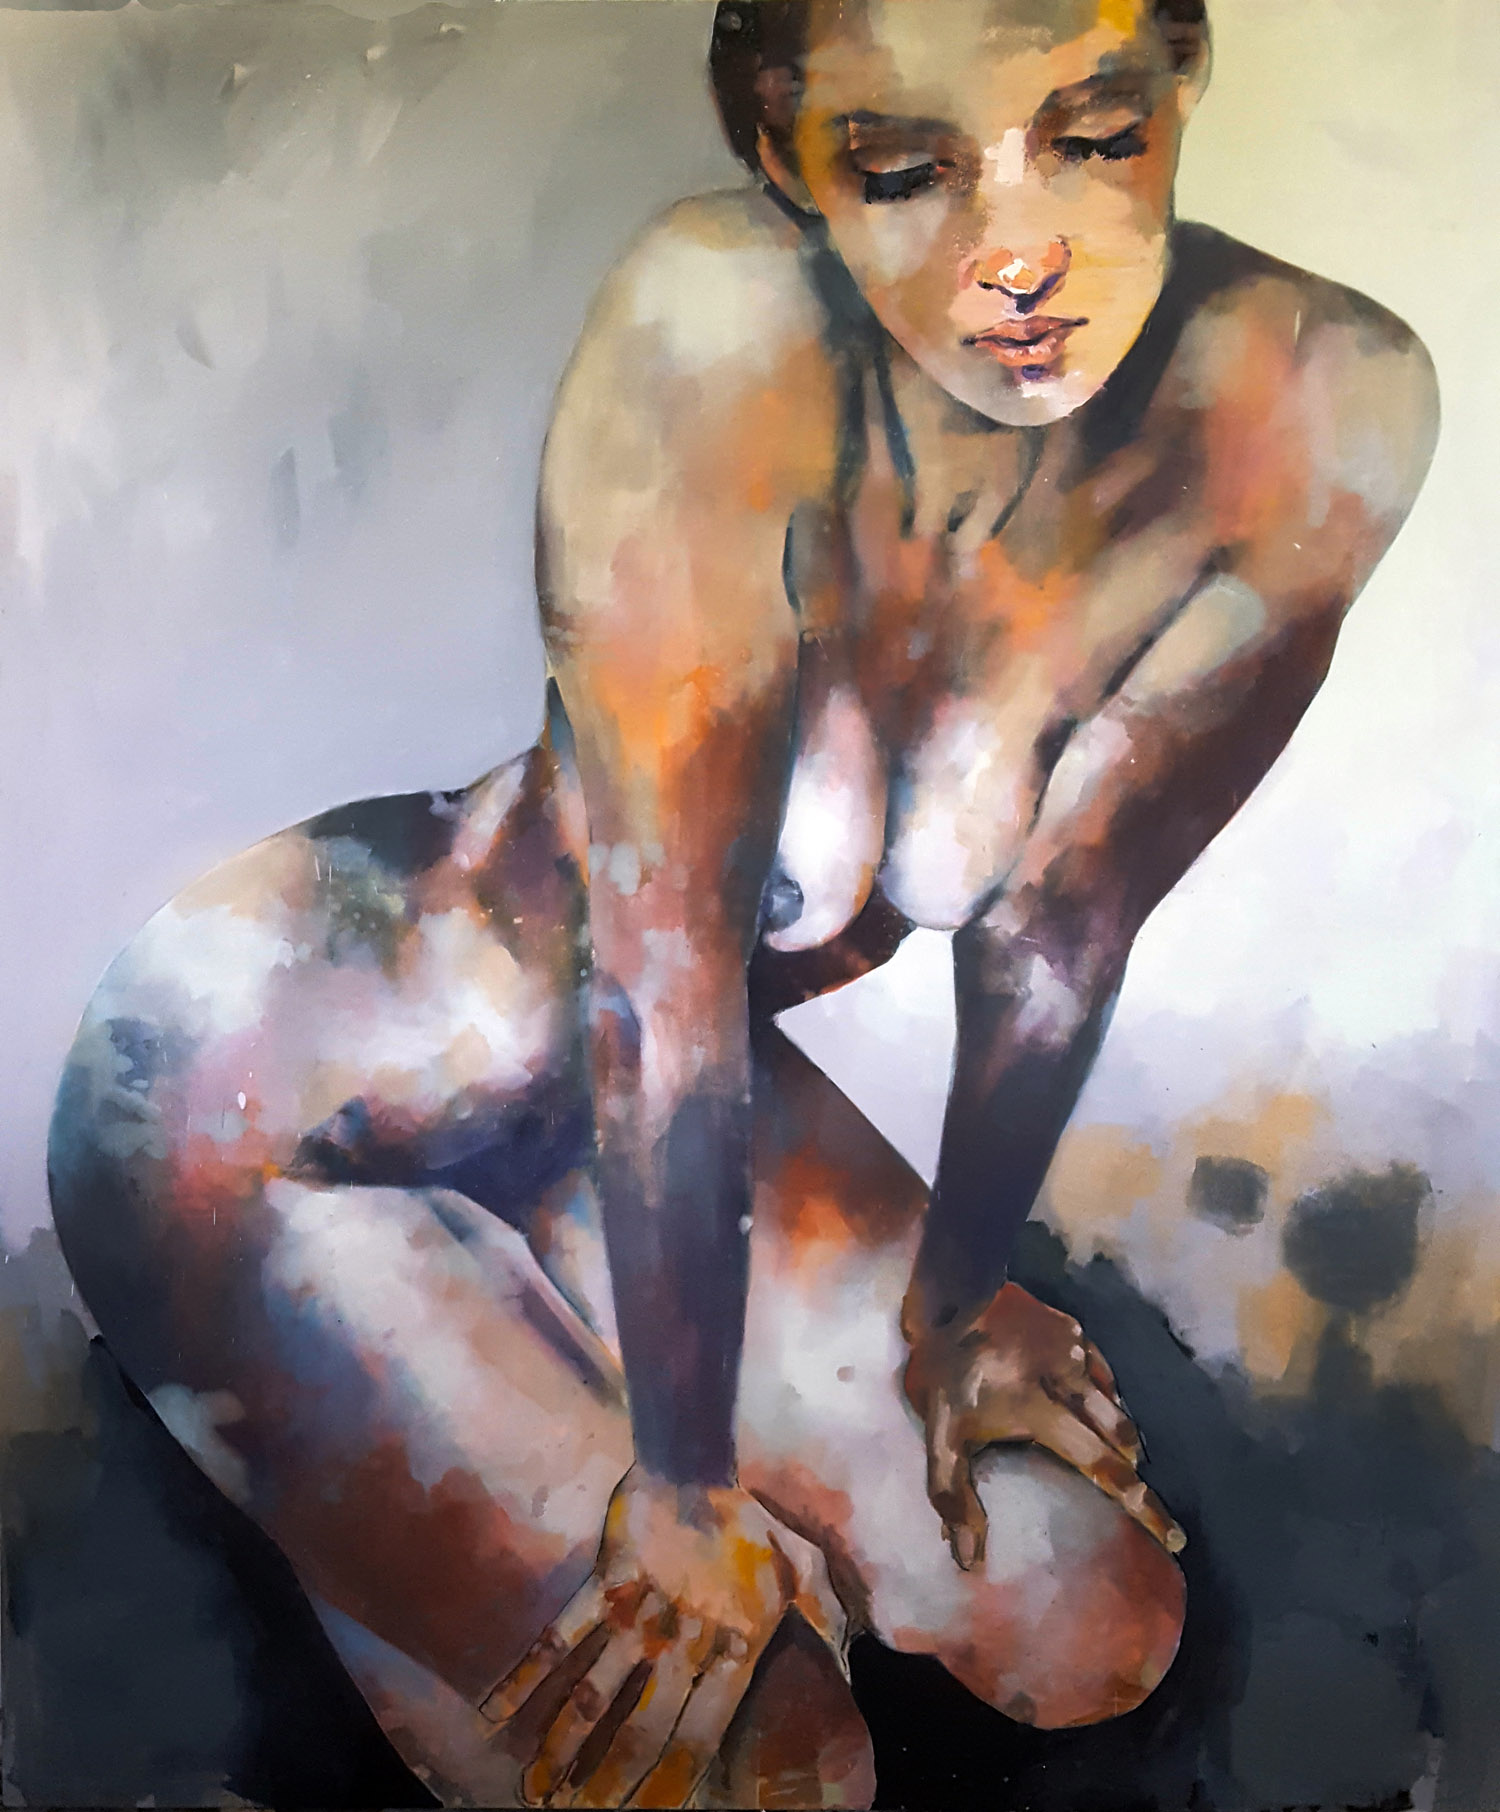 10-28-18 figure, oil on canvas, 180x150cm